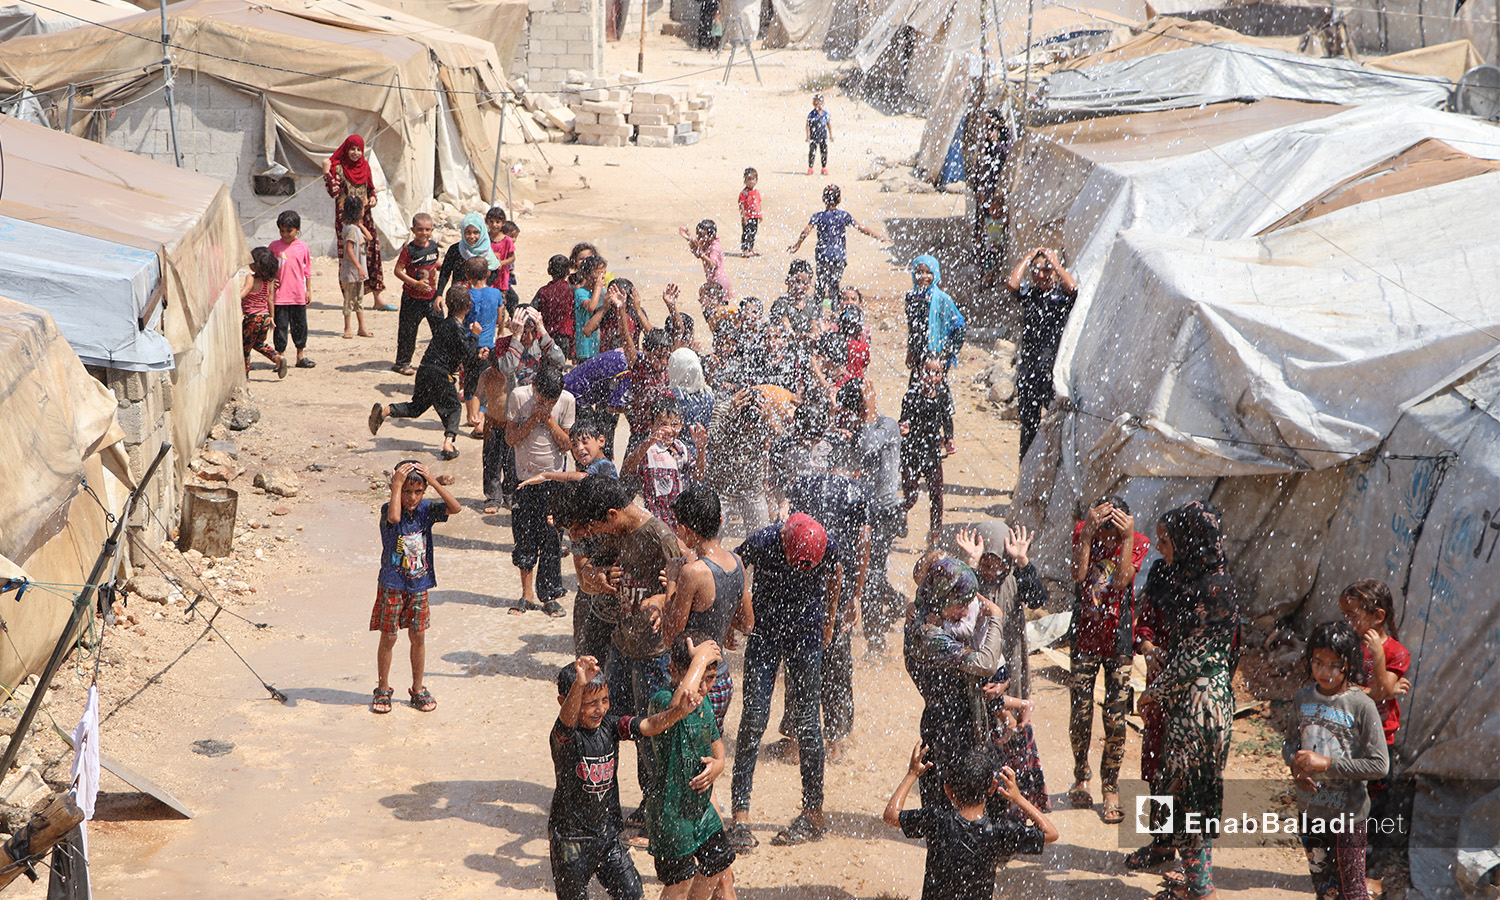 A campaign by the Syrian Civil Defense to alleviate the summer's heat for the camps' residents in the al-Sharqiyah camp for internally displaced people (IDPs) in al-Bab in Aleppo countryside – 05 September 2020 (Enab Baladi / Asim Melhem)